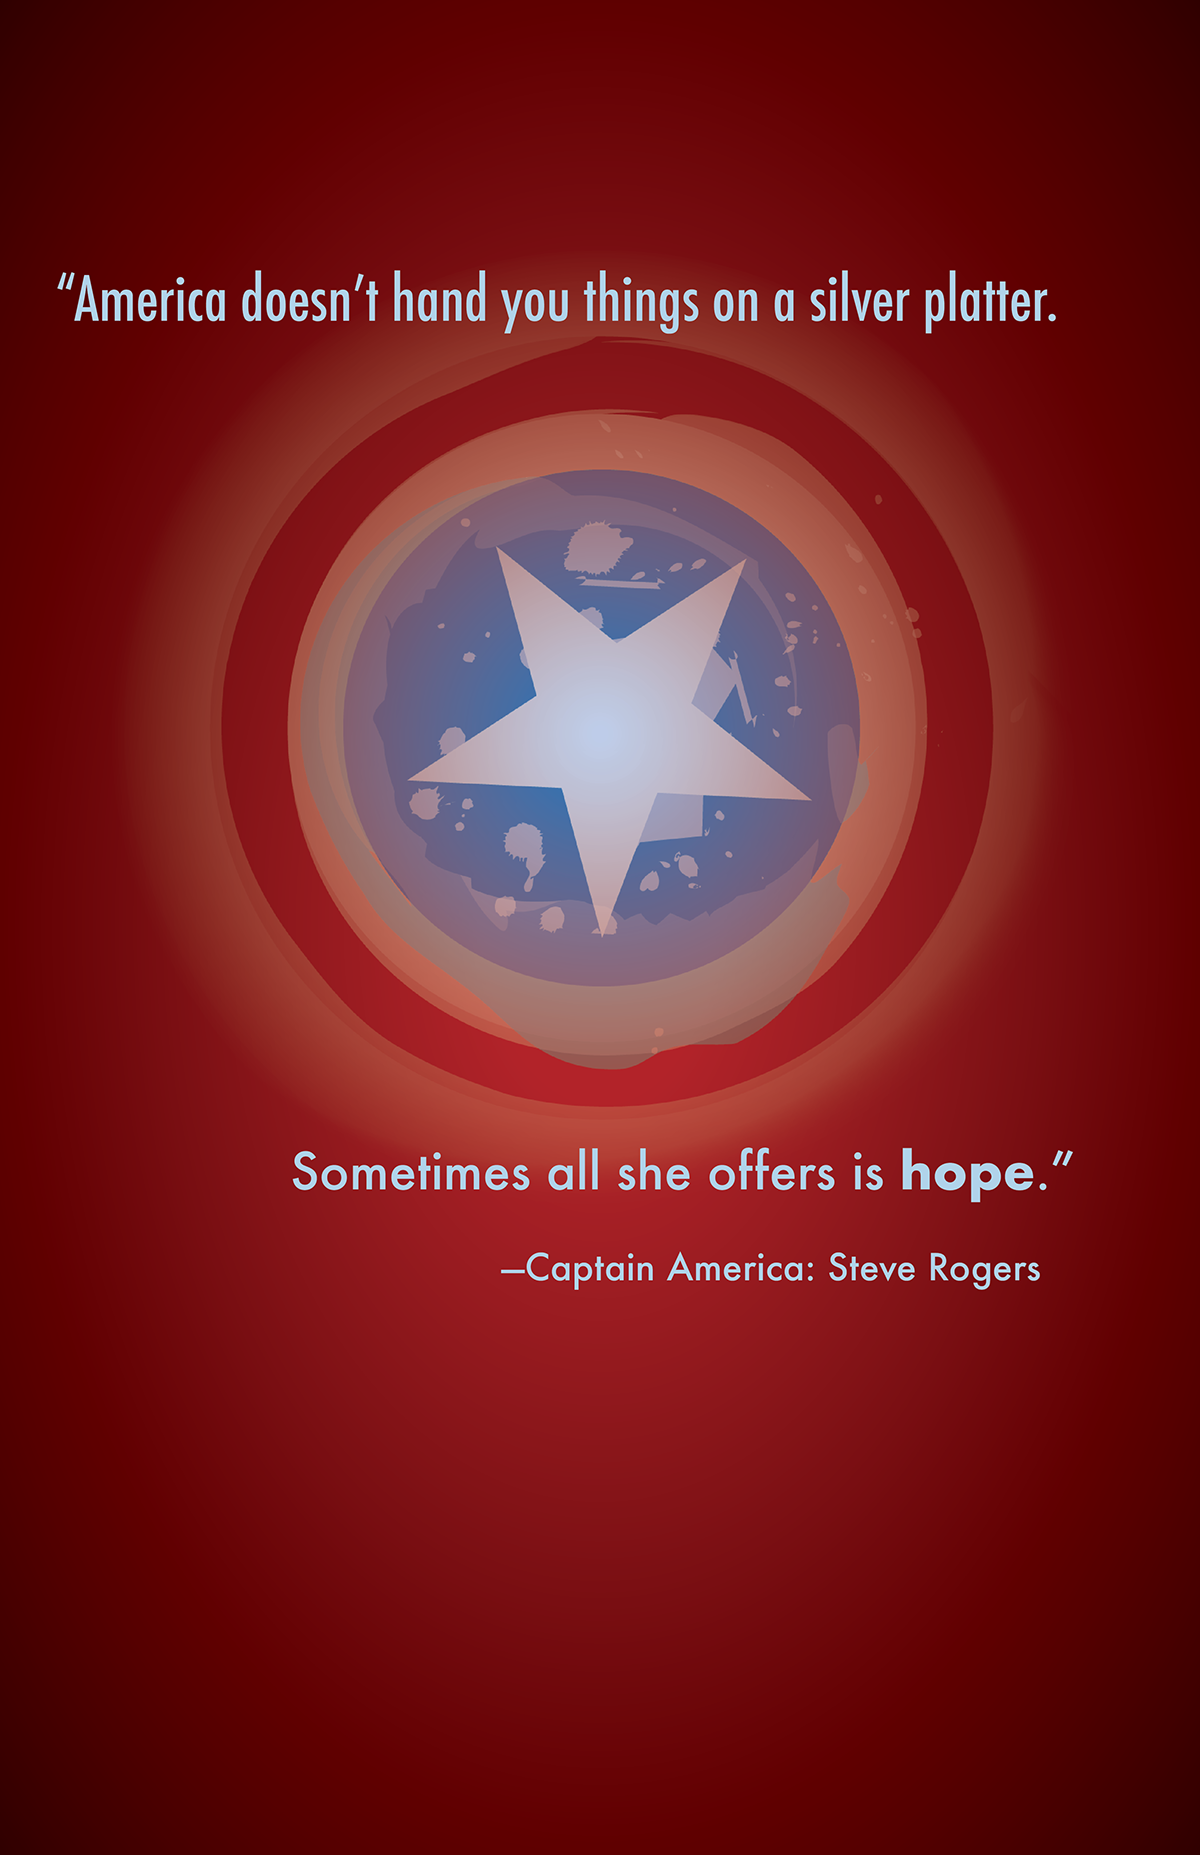 Inspirational Marvel Quote Posters on Pantone Canvas Gallery